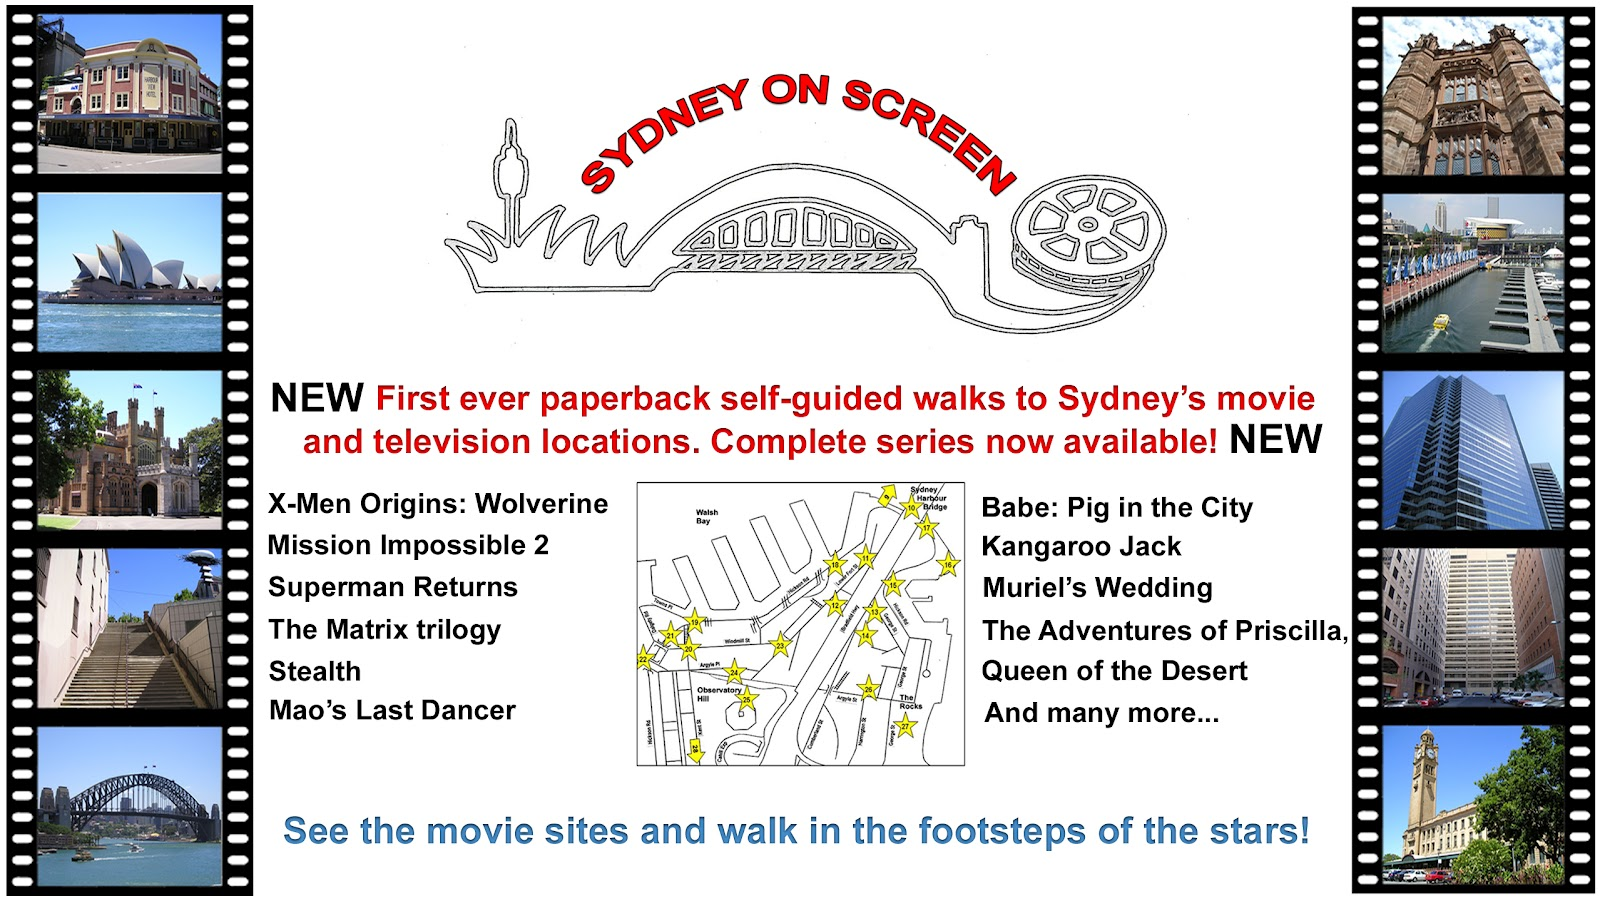 Sydney On Screen March 2012 Trailer Coupler Parts Diagram Http Wwwebaycom Itm Freedompivot Guides Now Sale